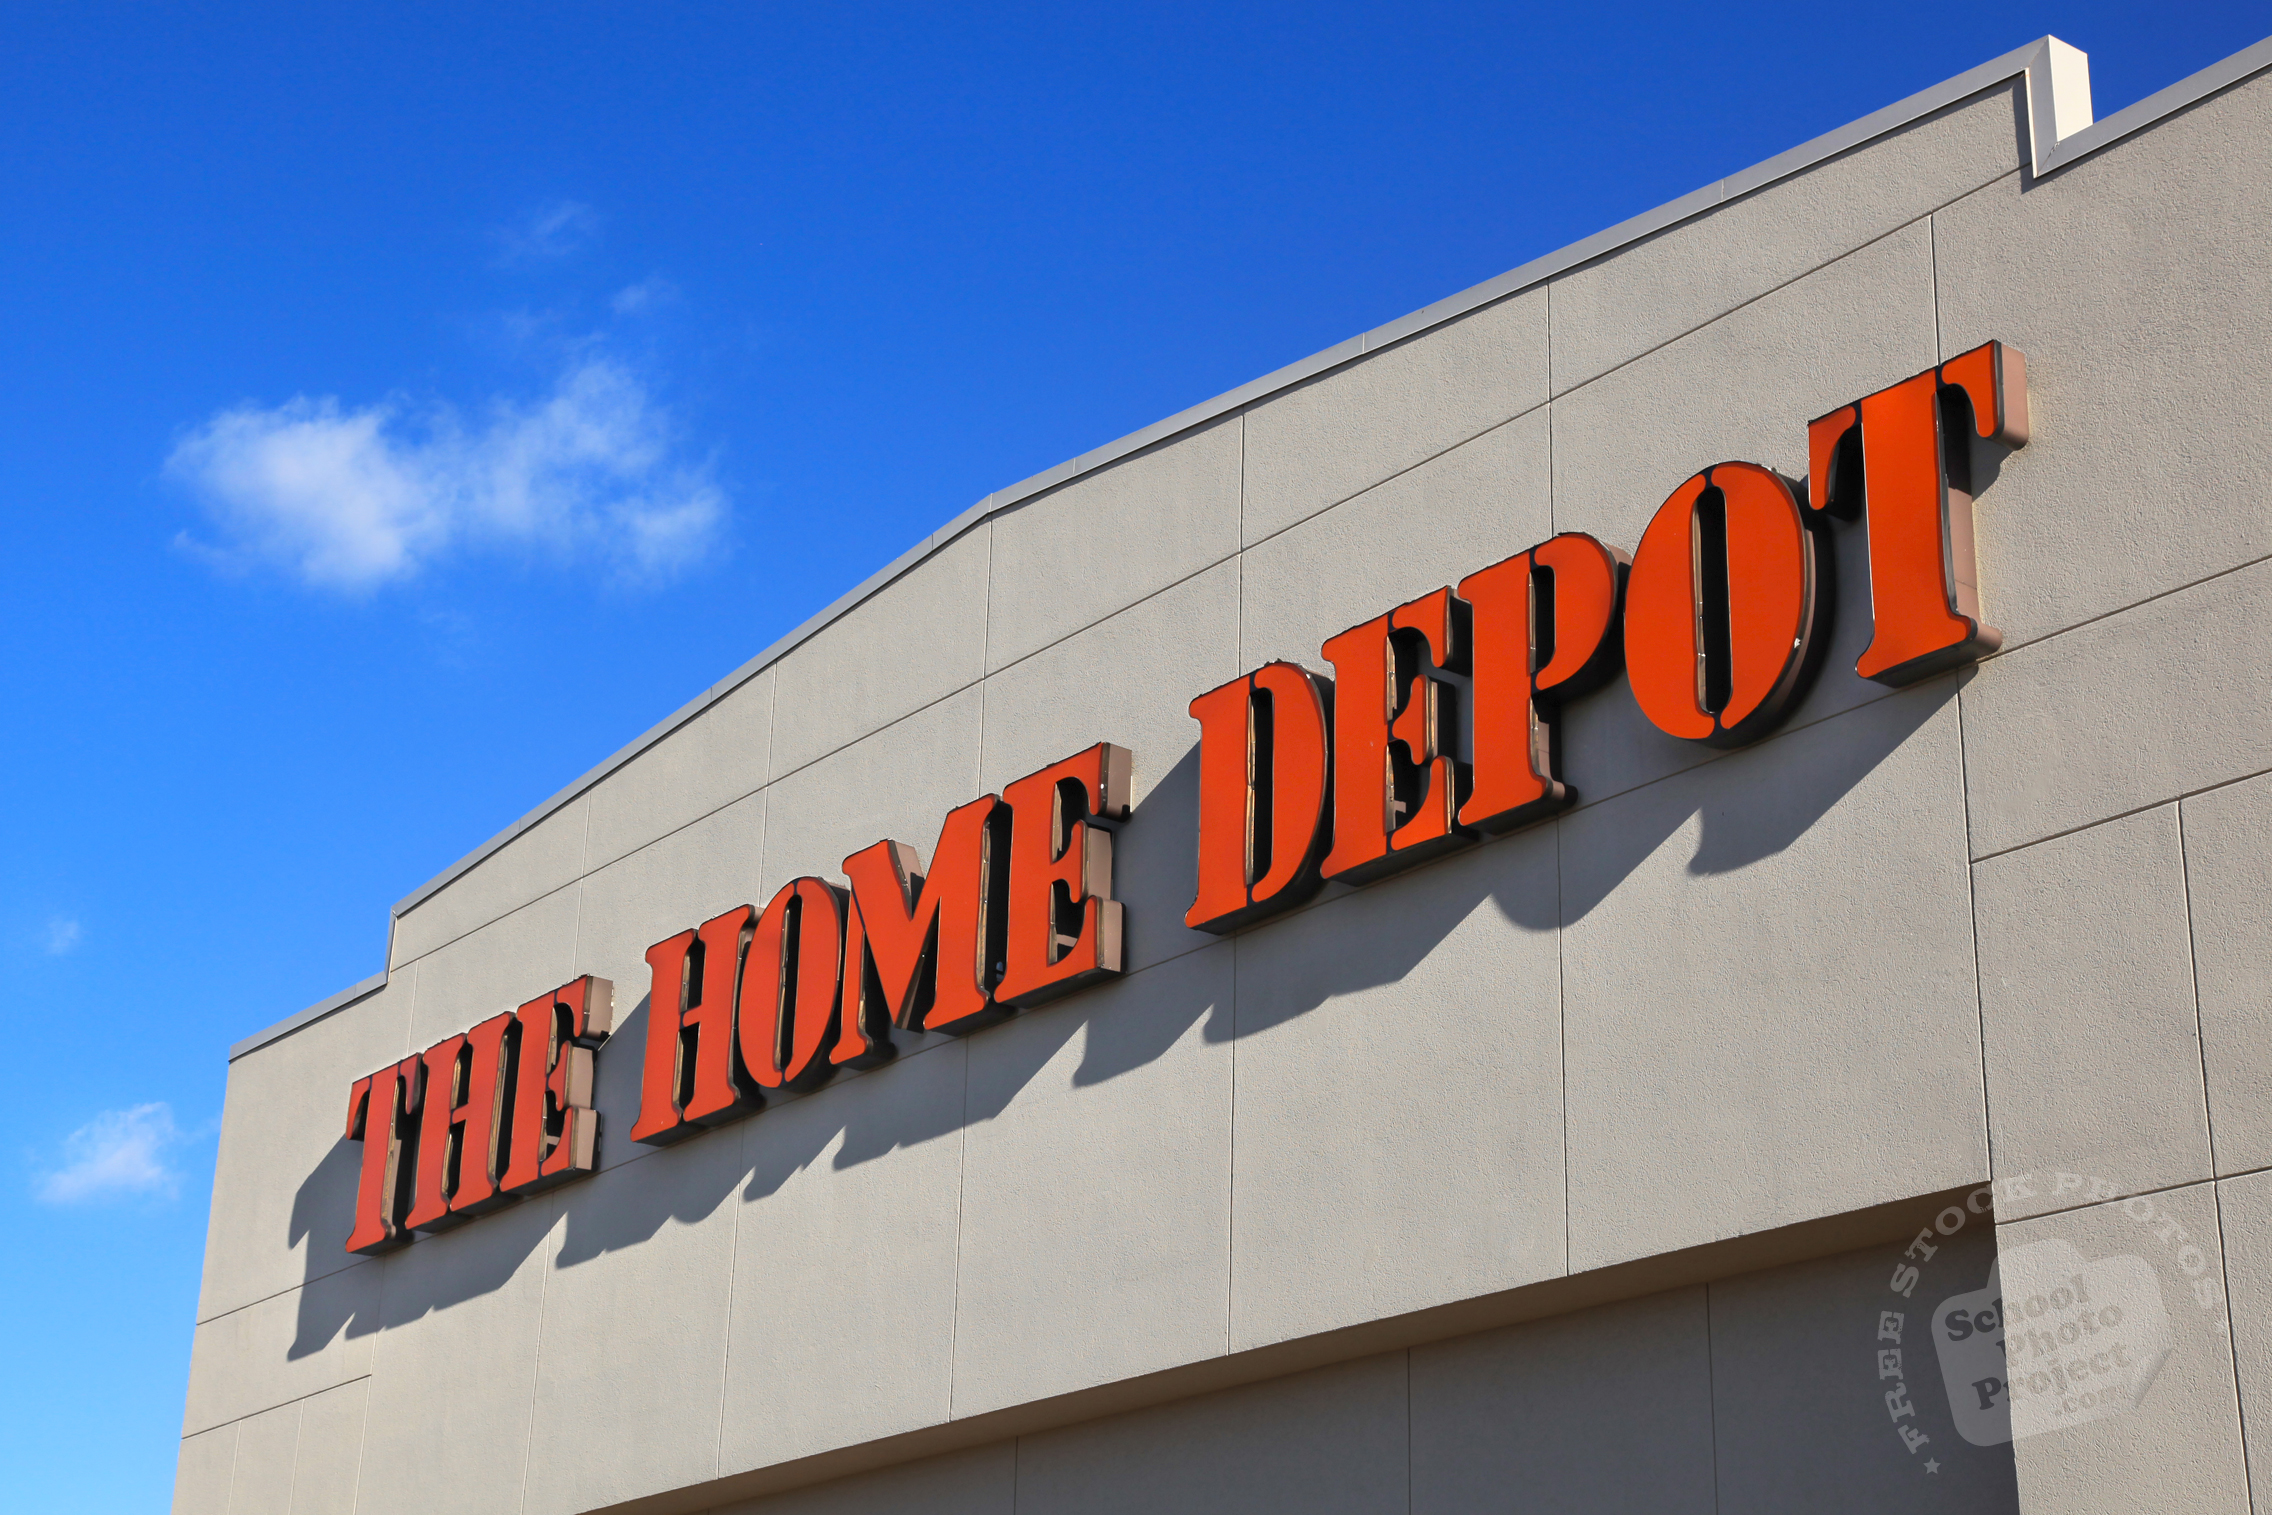 FREE The Home Depot Logo Home Depot Identity Popular panys